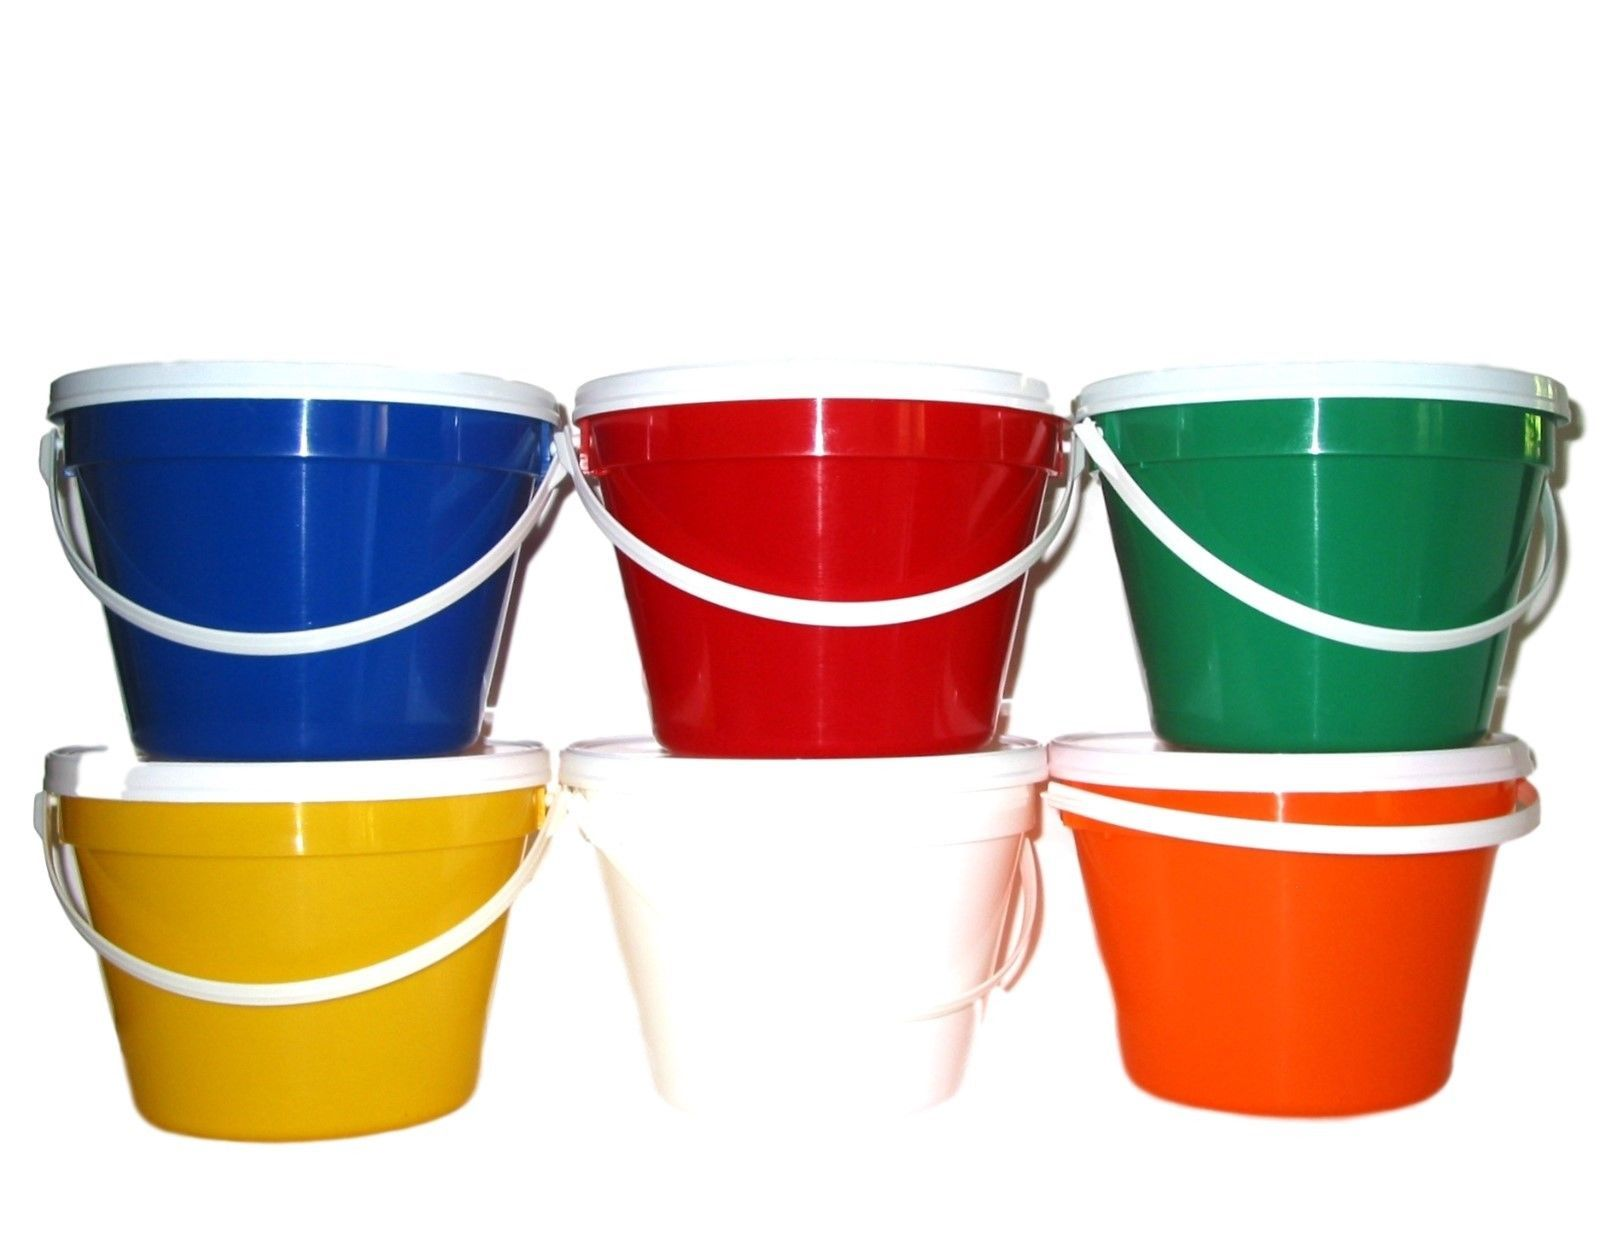 14 99 1 Gallon Bucket Lid Lead Free Food Safe No Bpa Air Tight Made In America Ebay Home Garden Color Mixing Red White Blue Orange